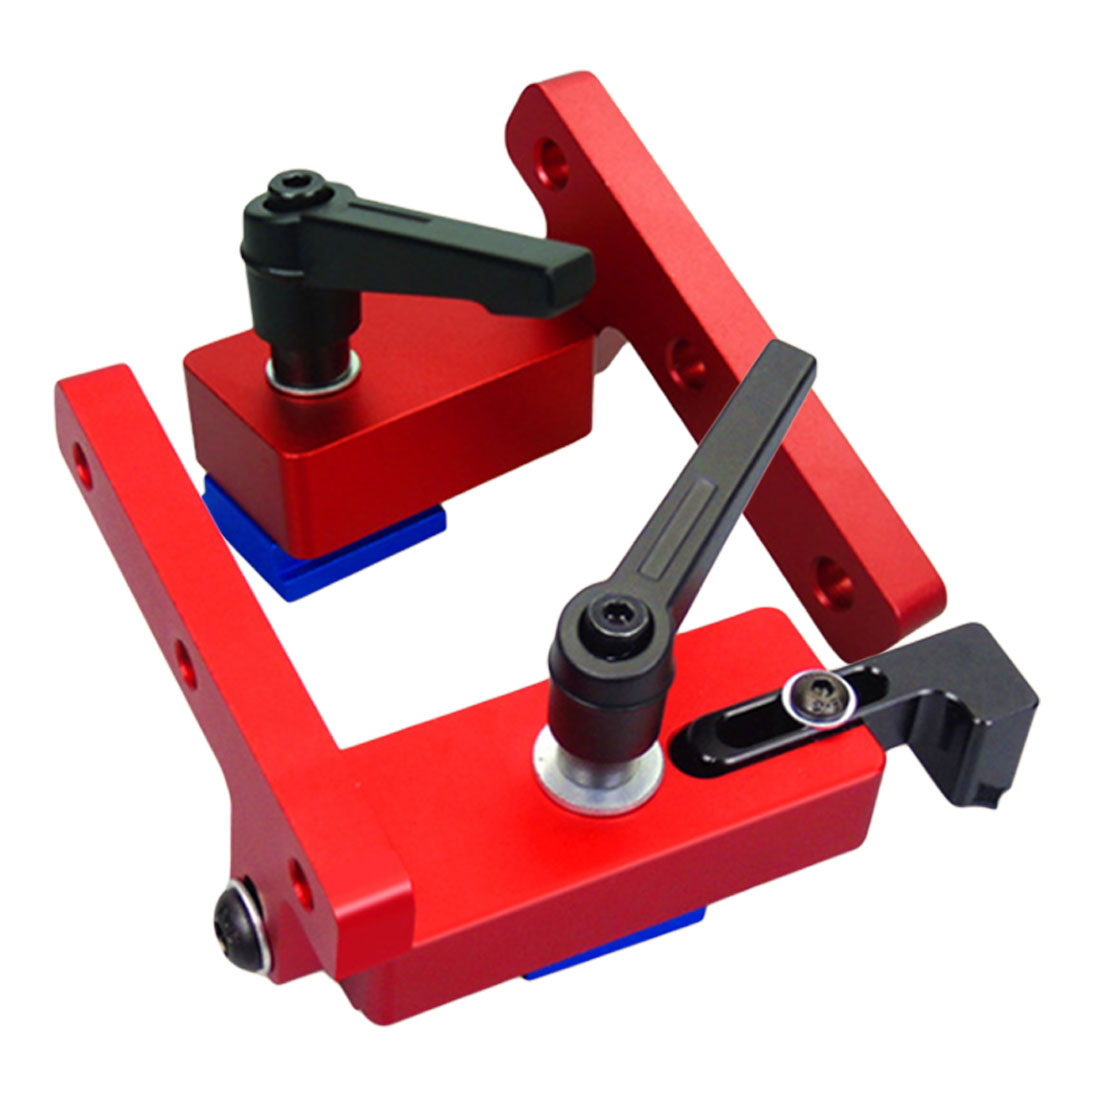 Flip Stop Aluminium T-Track Stop with Adjustable Scale <font><b>Mechanism</b></font> for 30mm 45mm T-track image